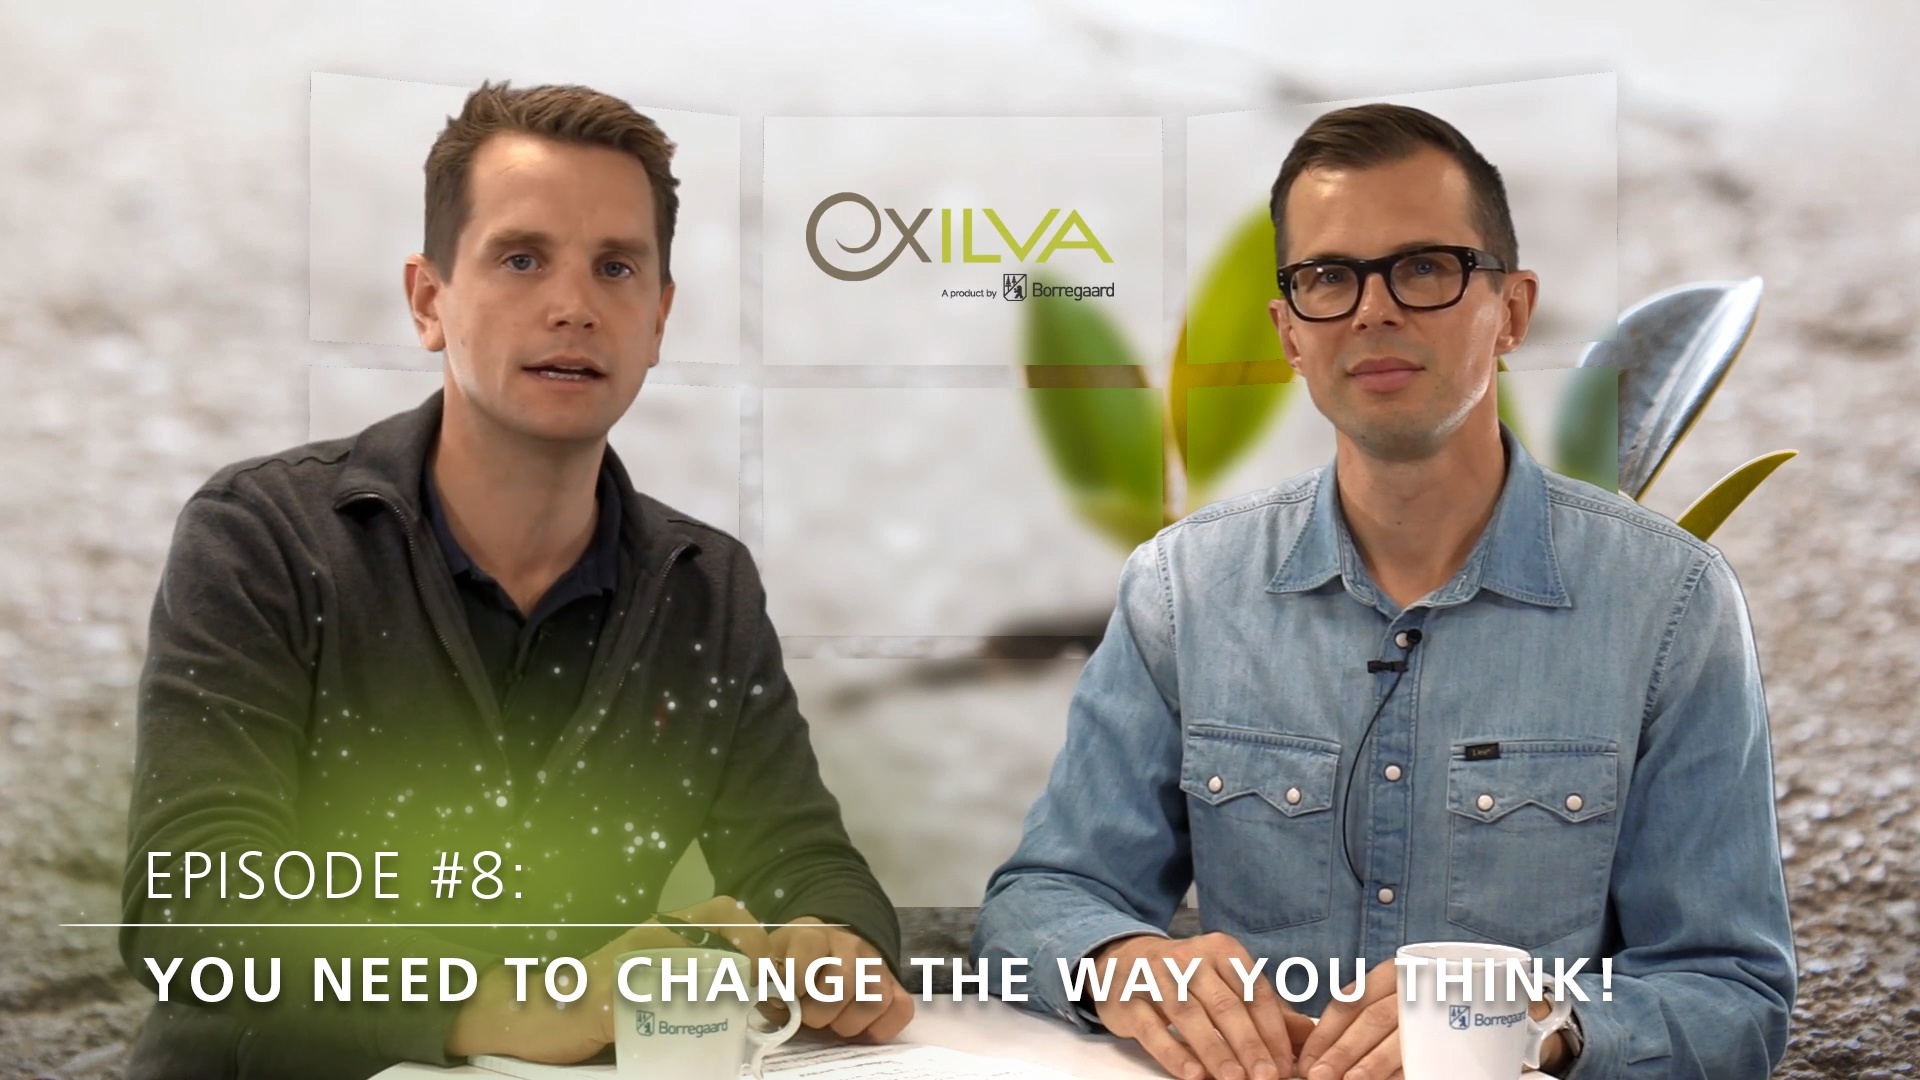 Topic Tuesday Episode 9 - You need to change the way you think!